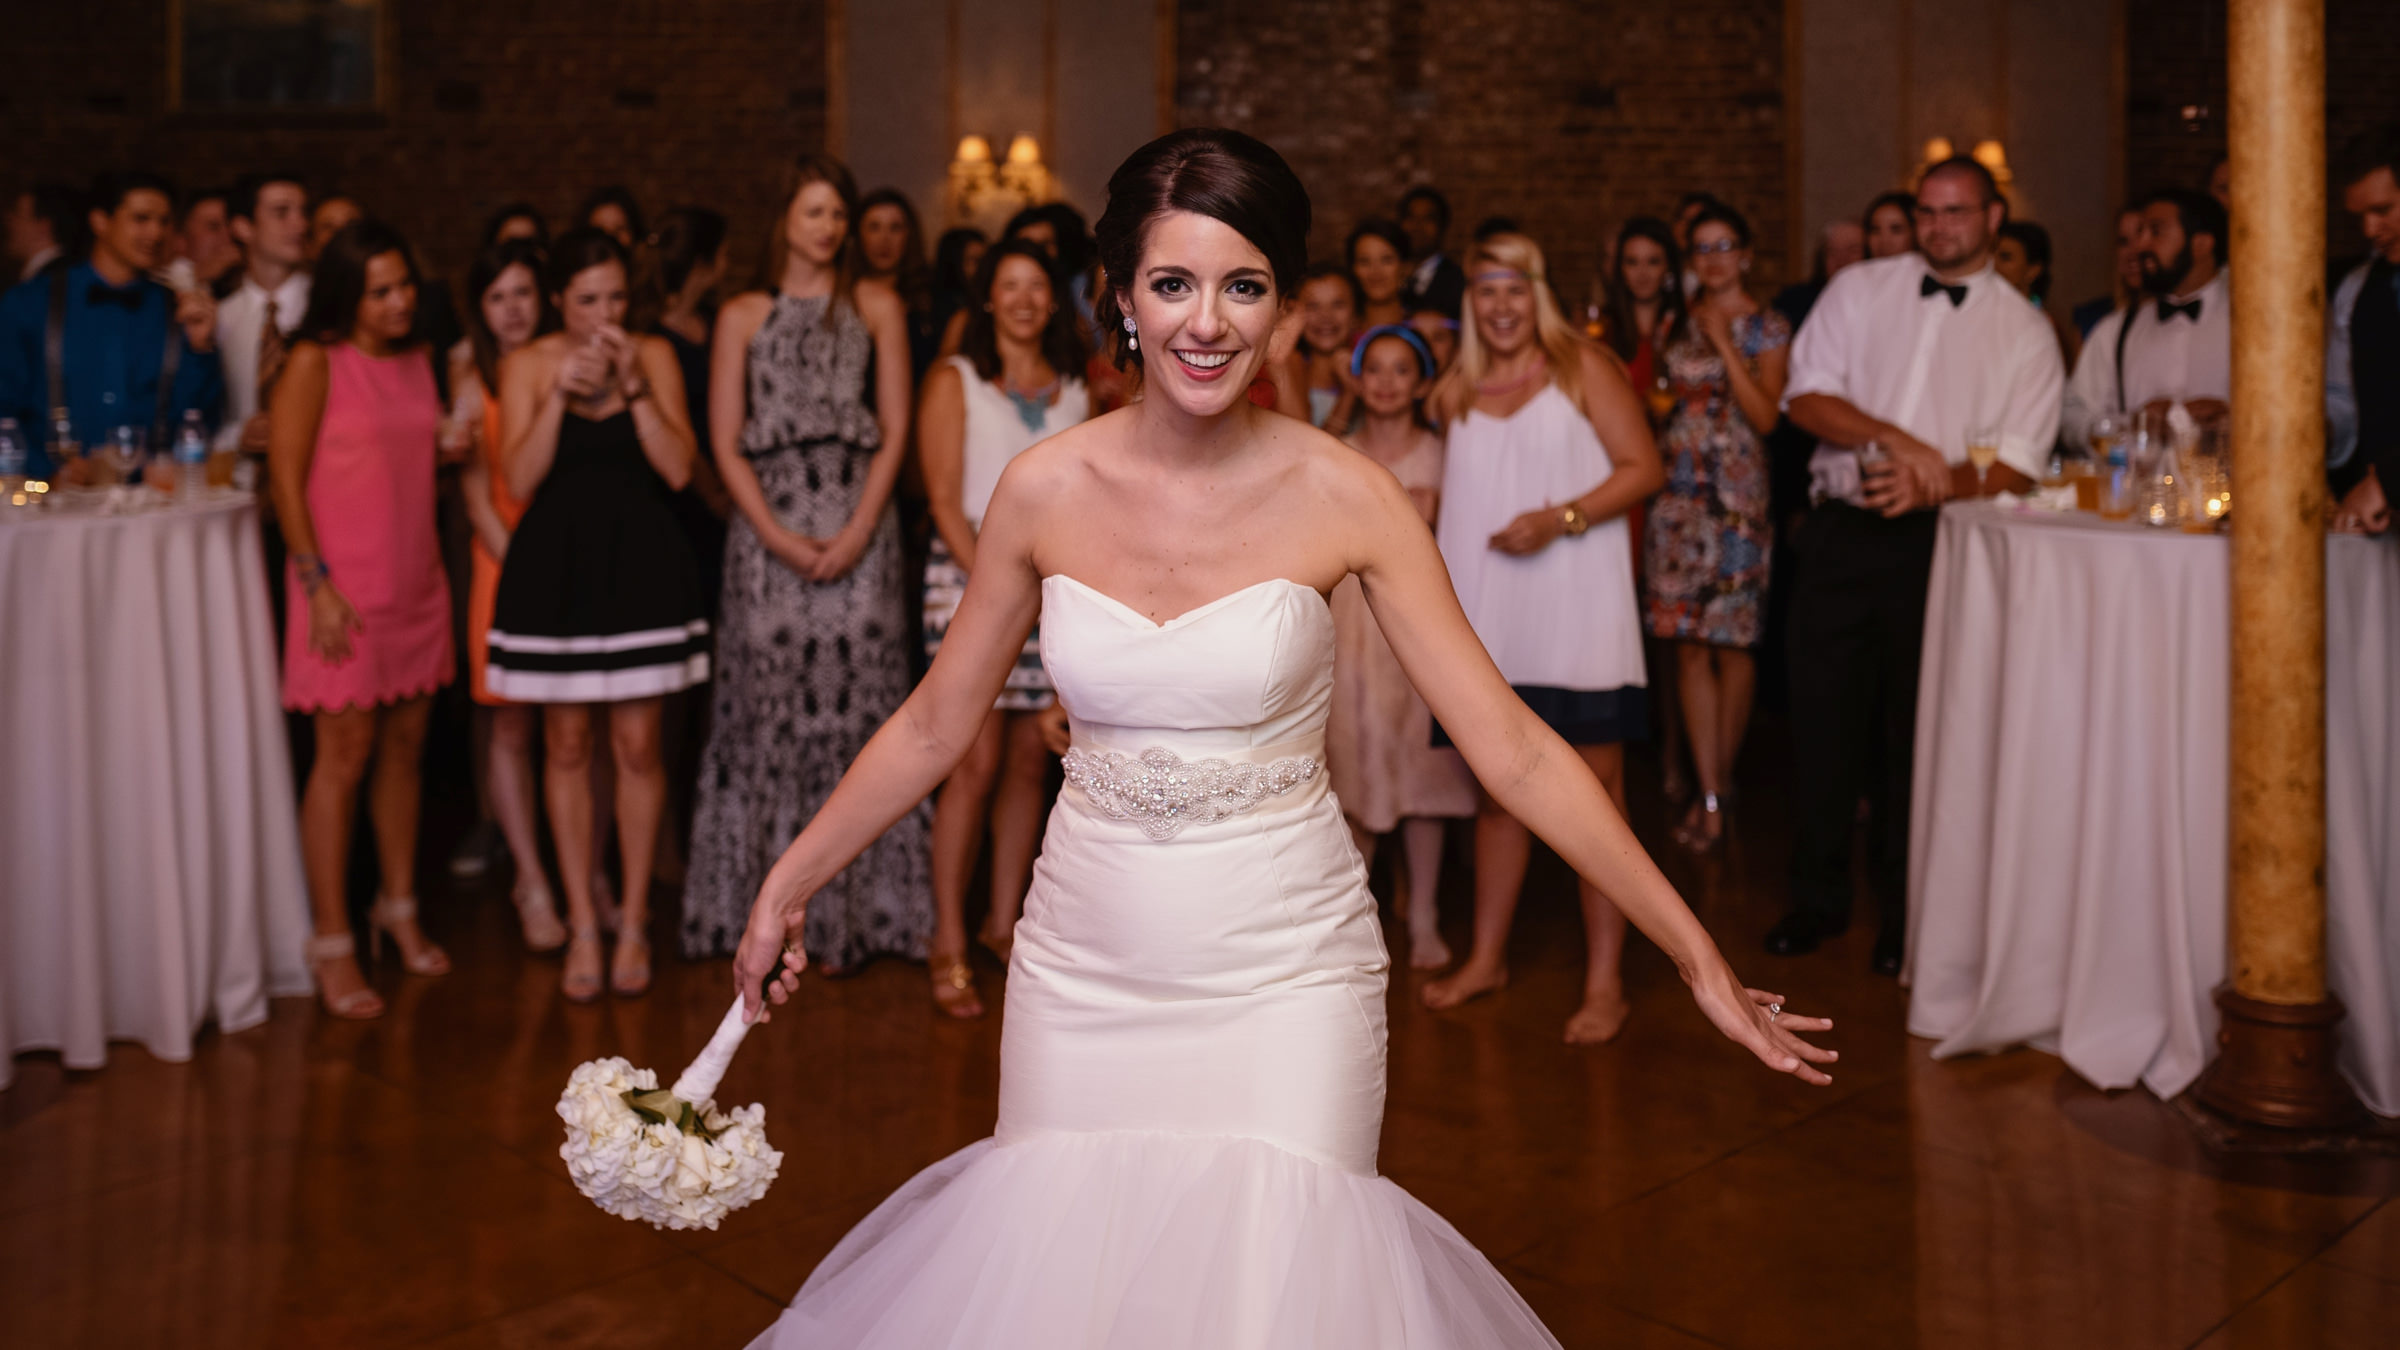 Bride gets ready to throw her bouqet to guests - Photo by Dark Roux - Texas wedding photographers